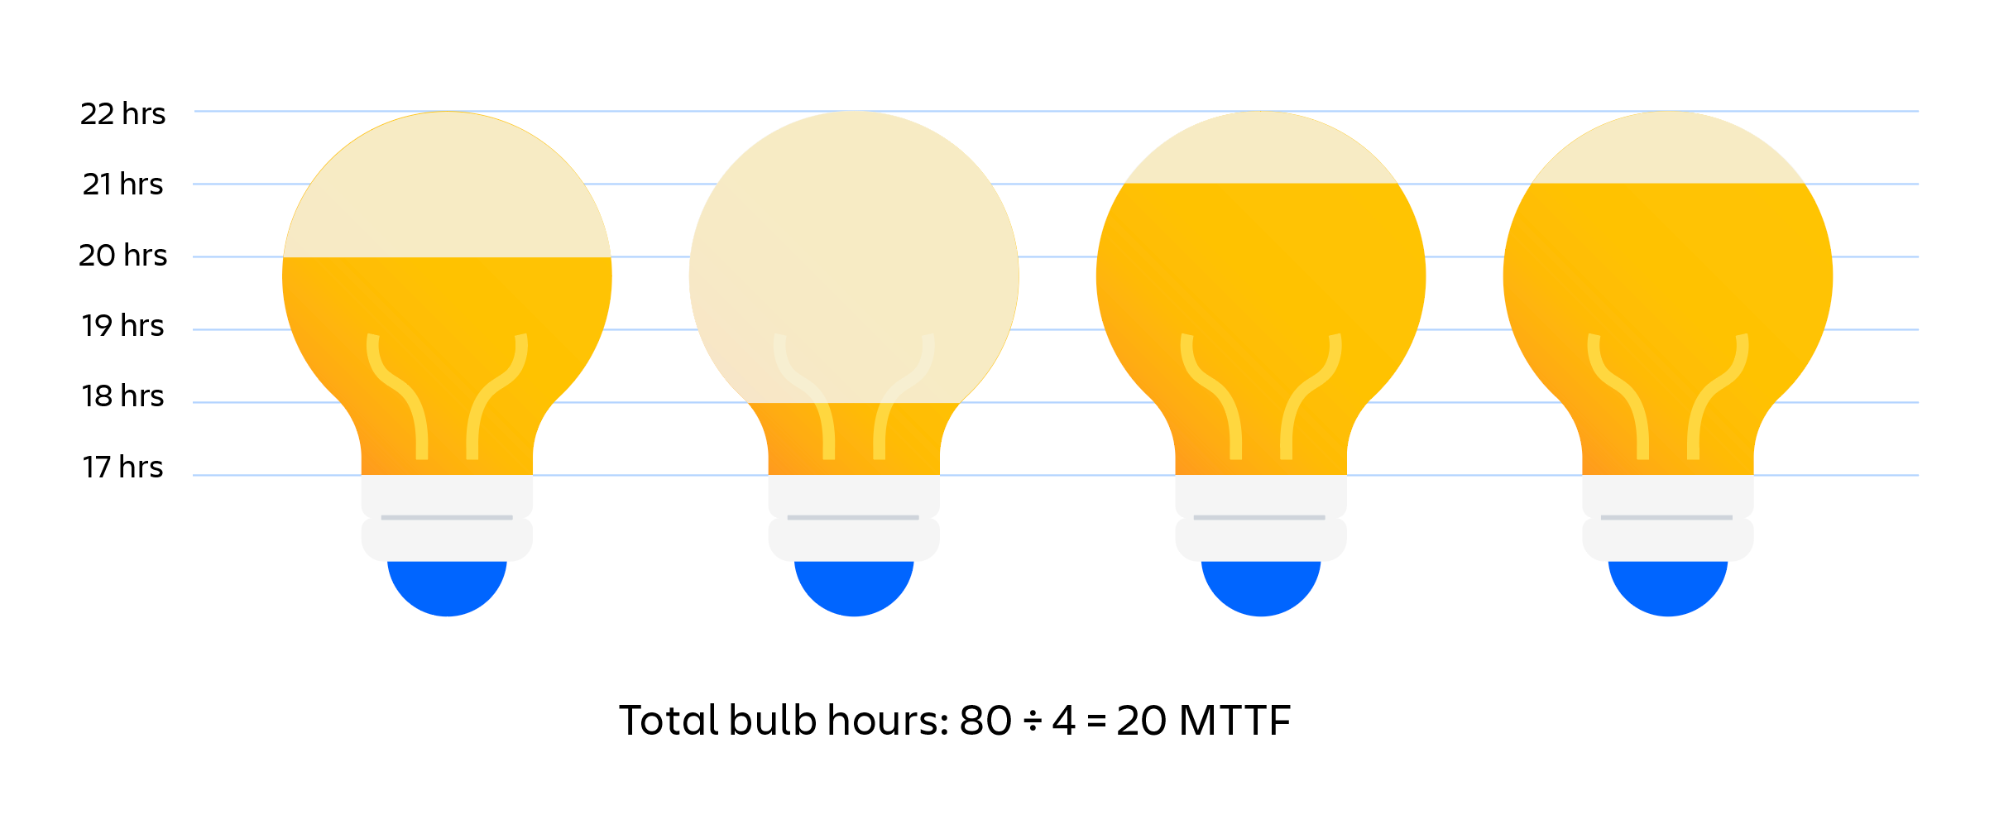 Visual example of figuring out the MTTF of light bulbs. Total bulb hours divided by the number of light bulbs equals MTTF (mean time to failure)